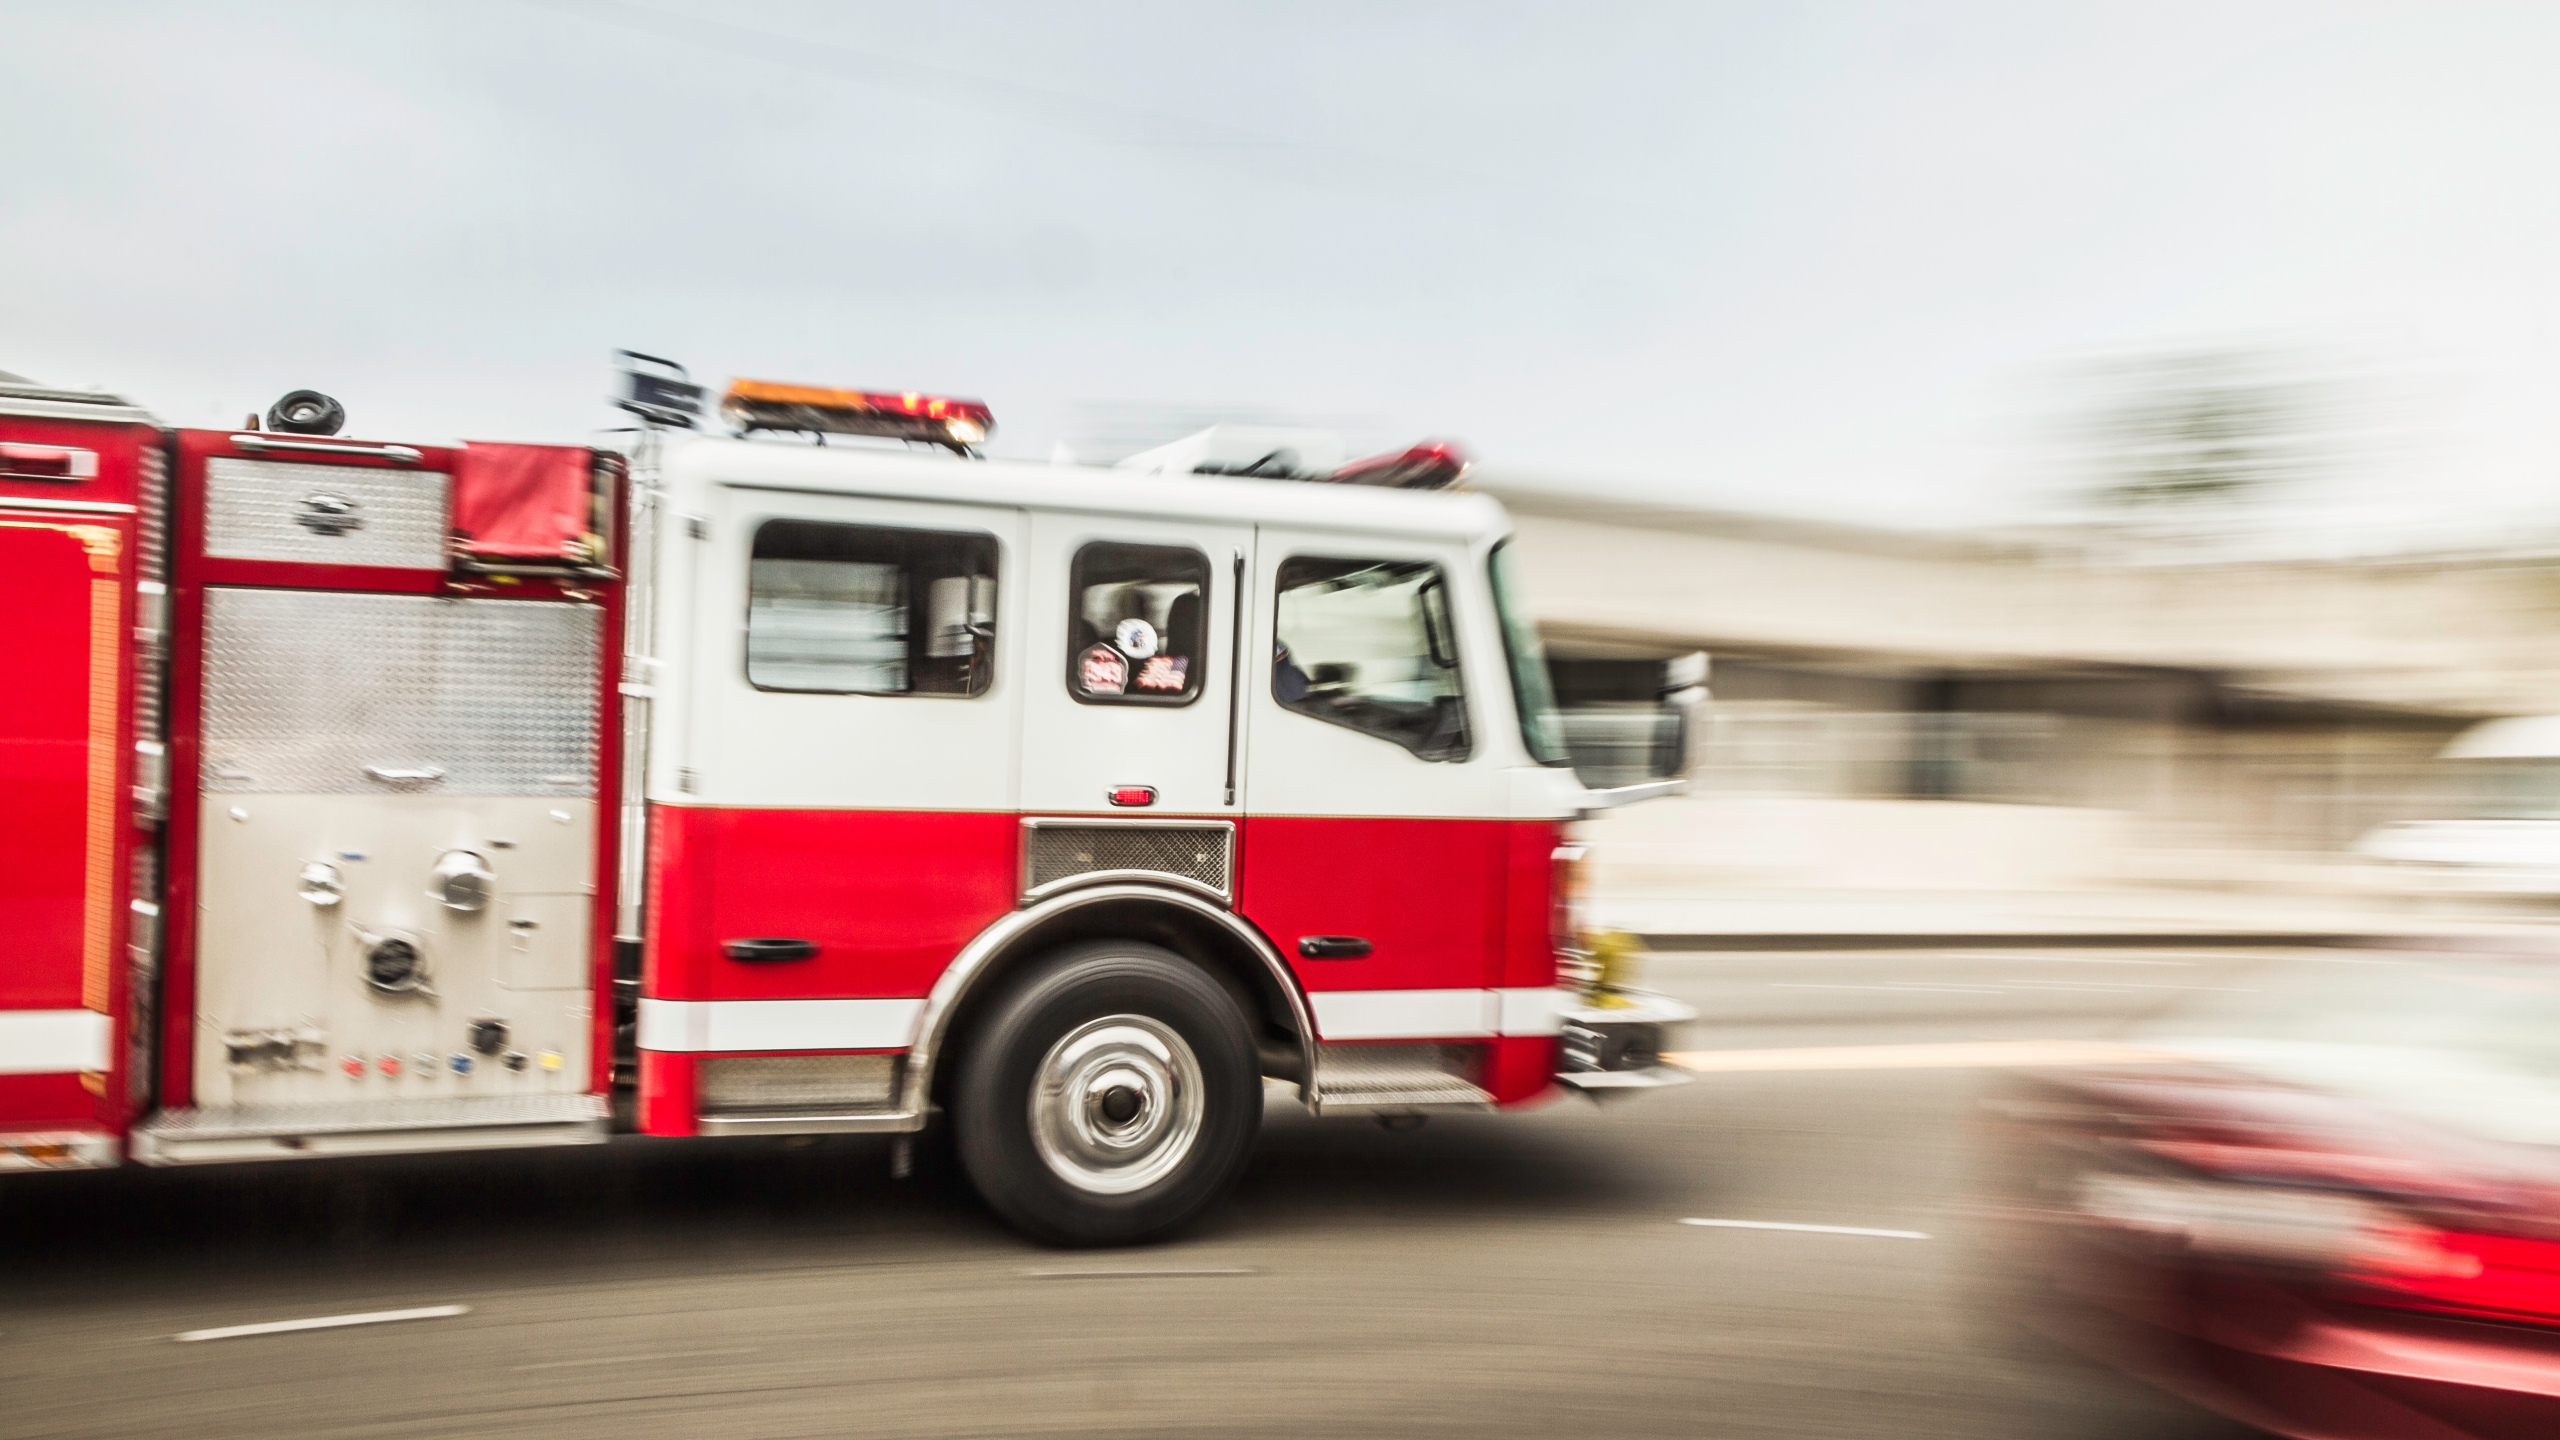 A fire truck is seen in this Getty Images file photo.